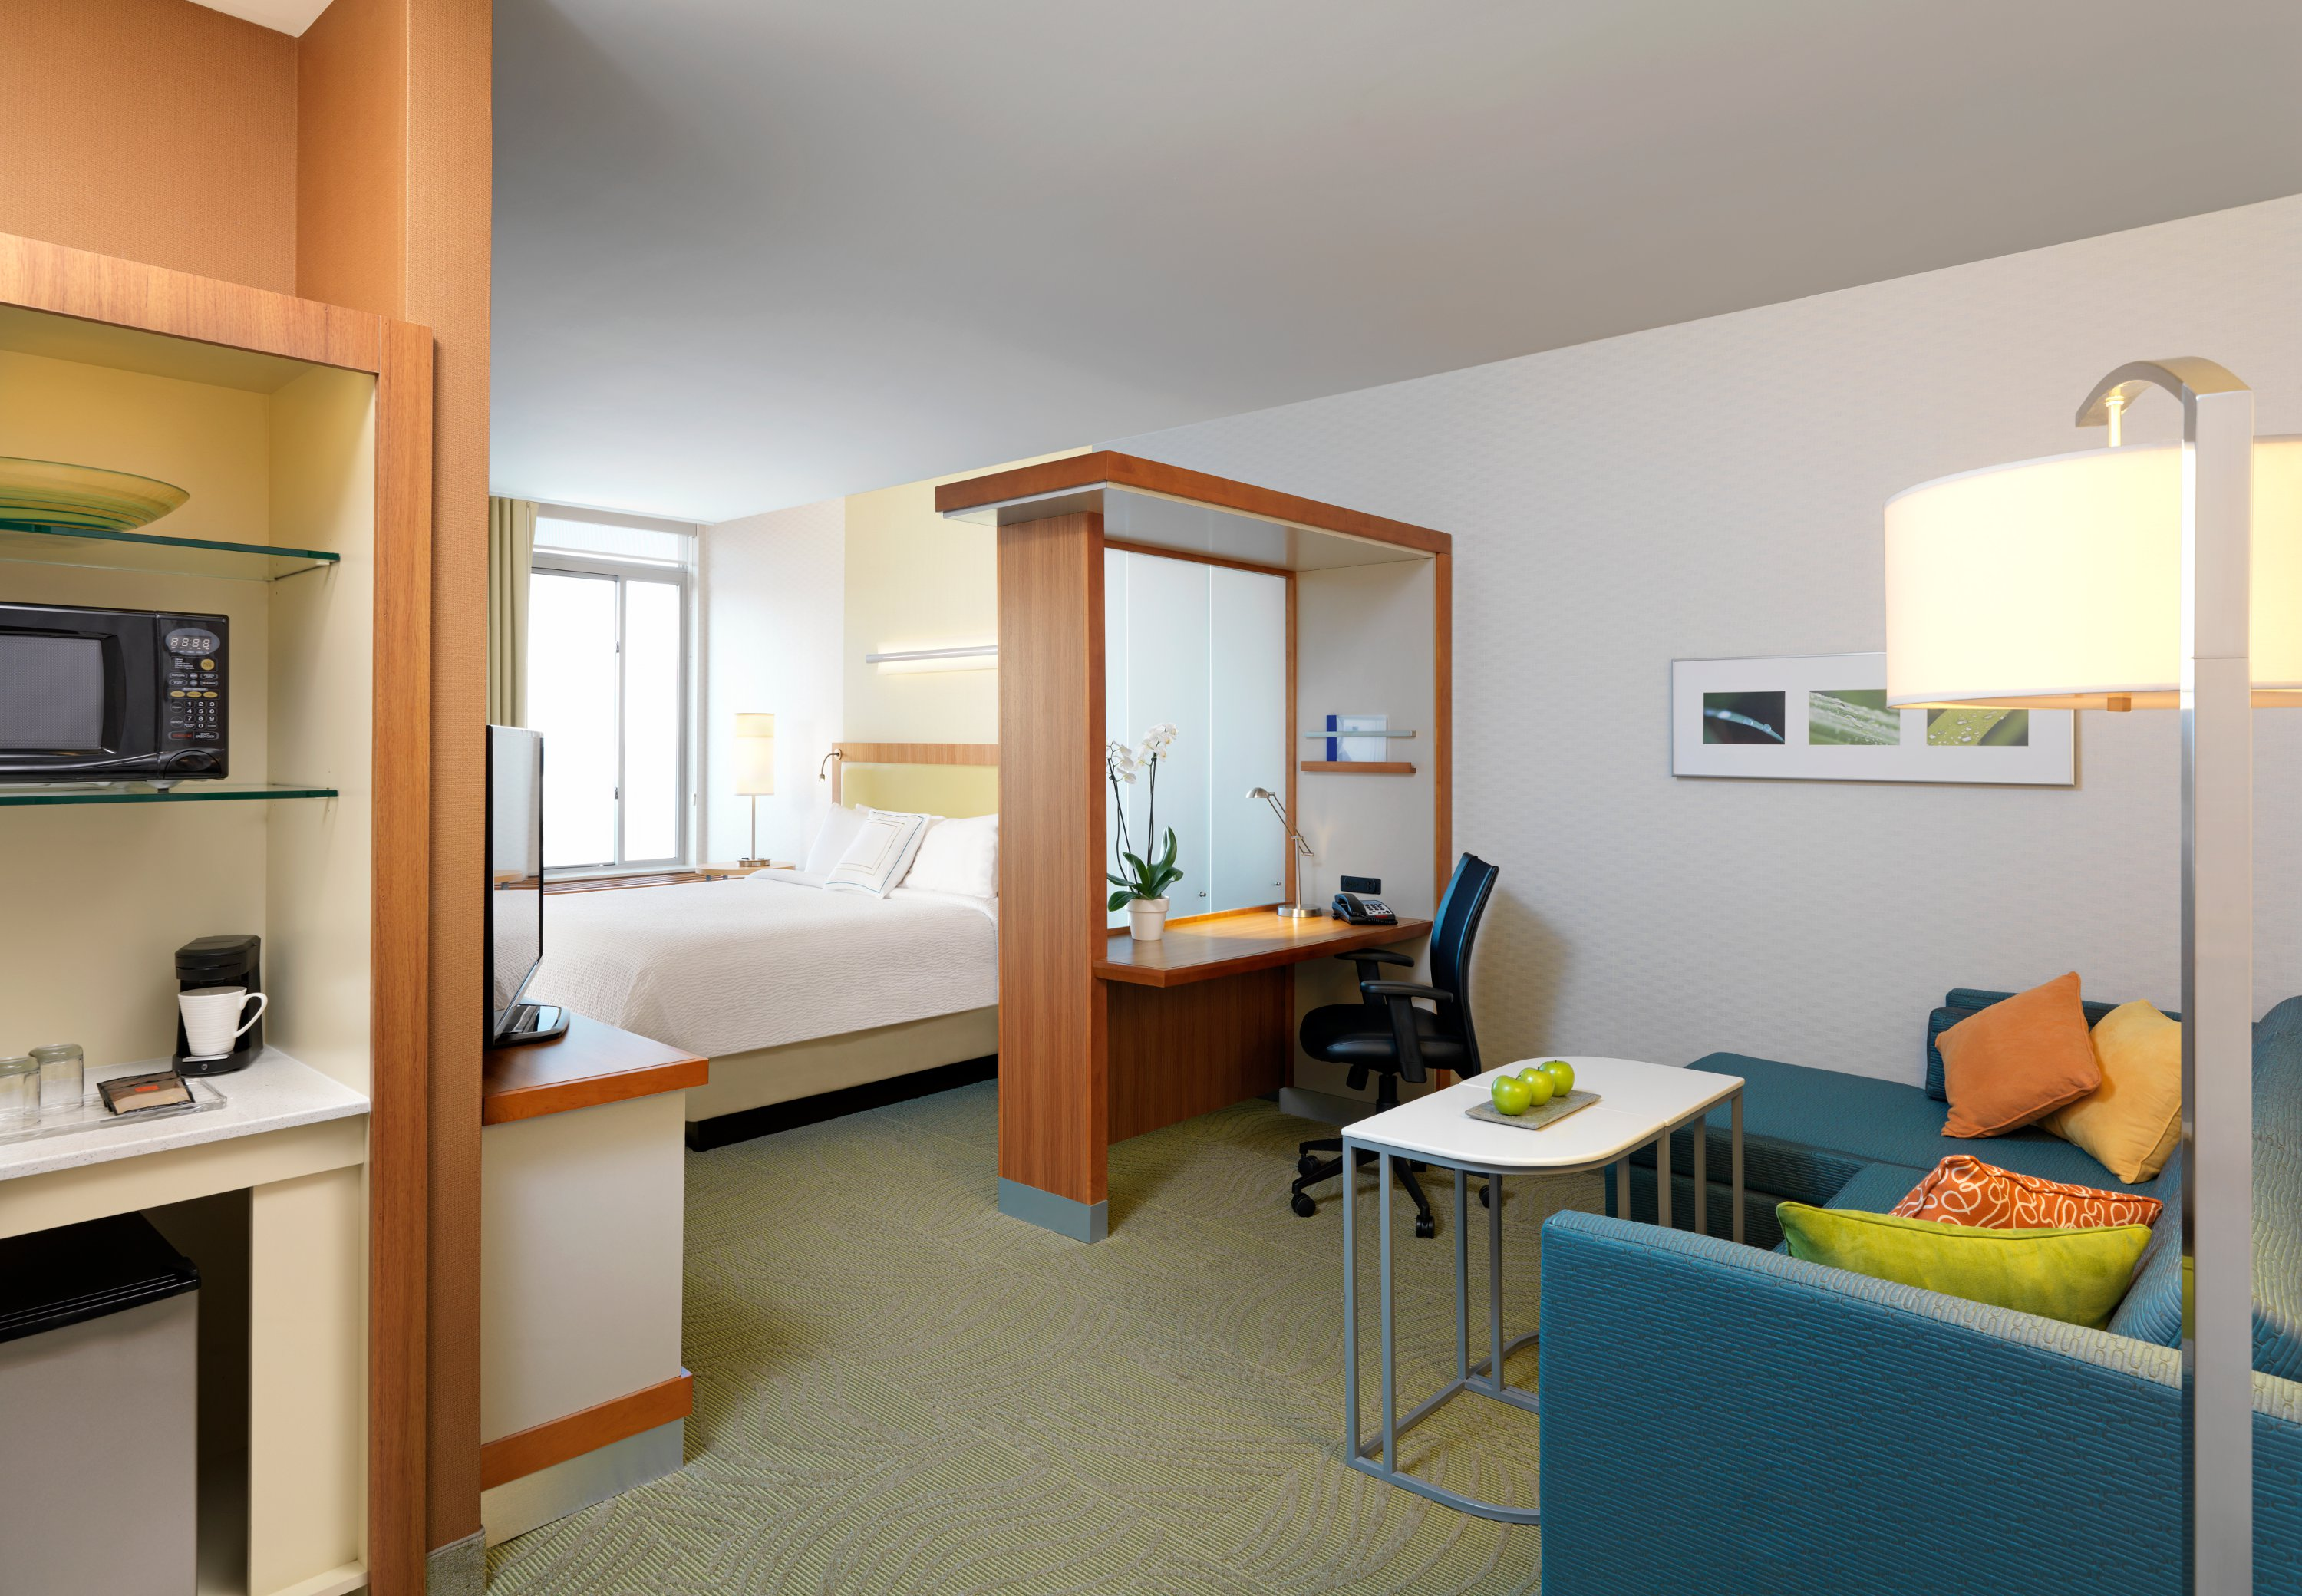 SpringHill Suites by Marriott Denver Tech Center image 5